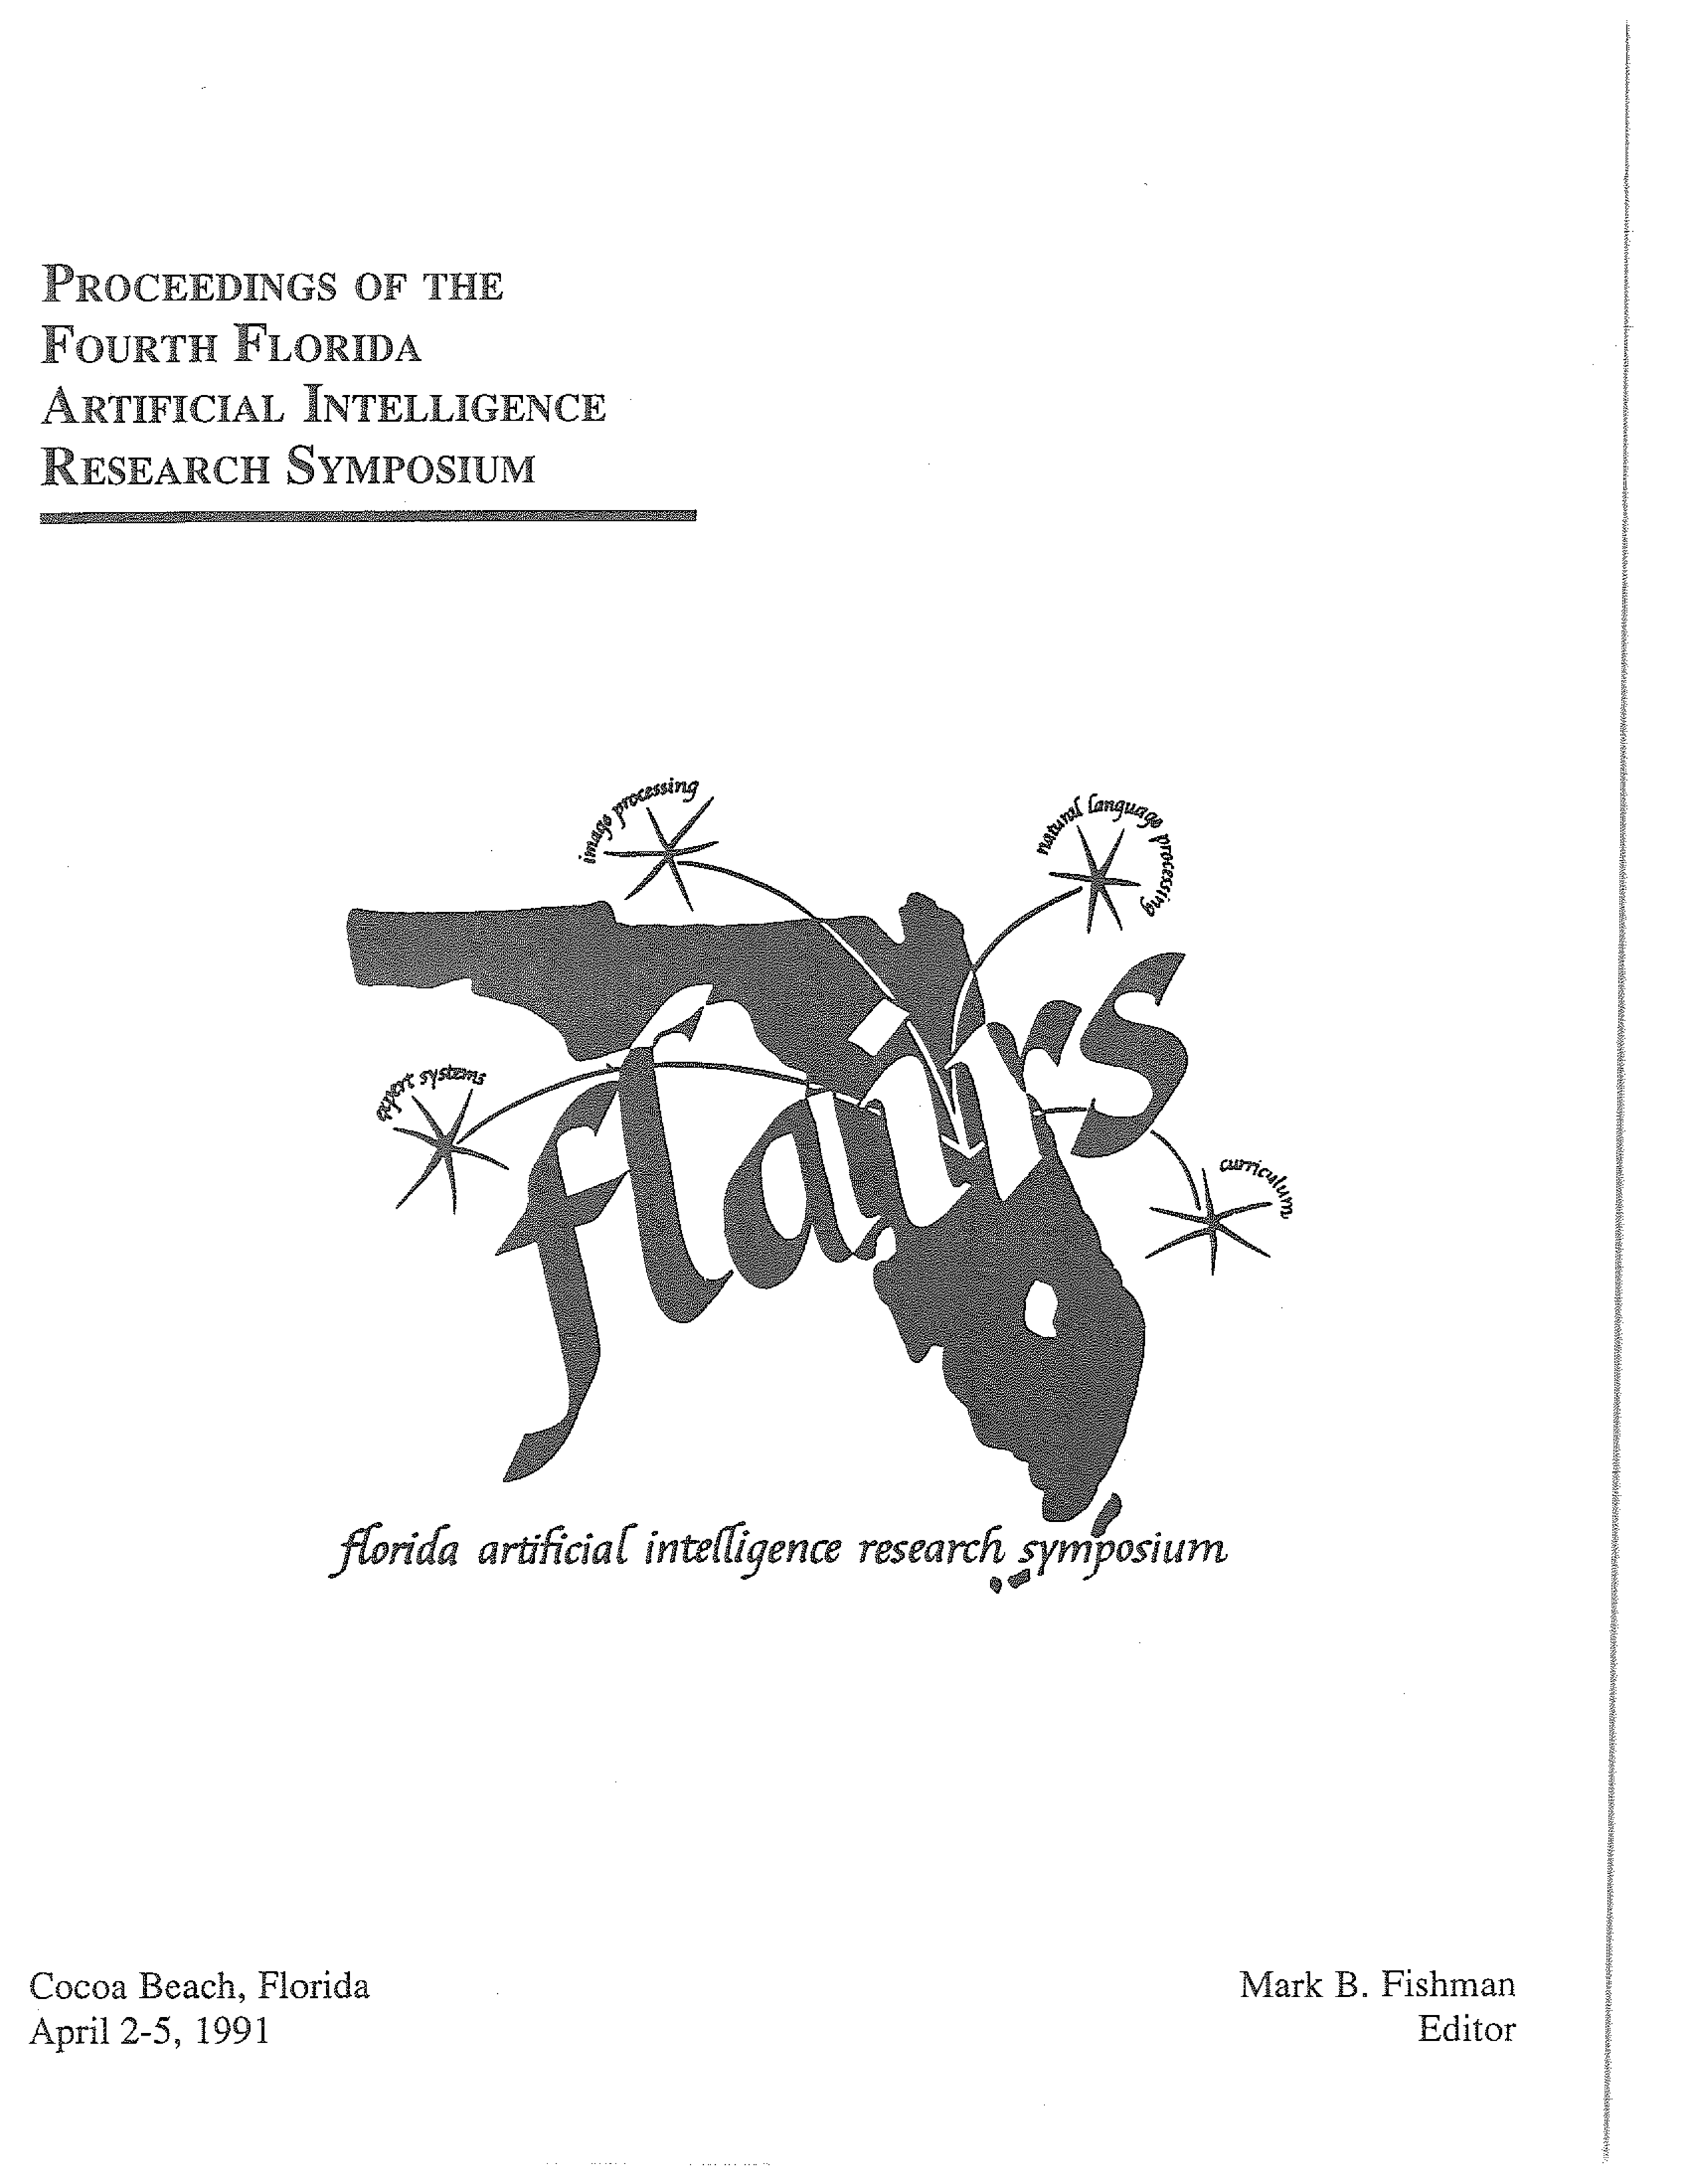 Proceedings of FLAIRS-4, cover